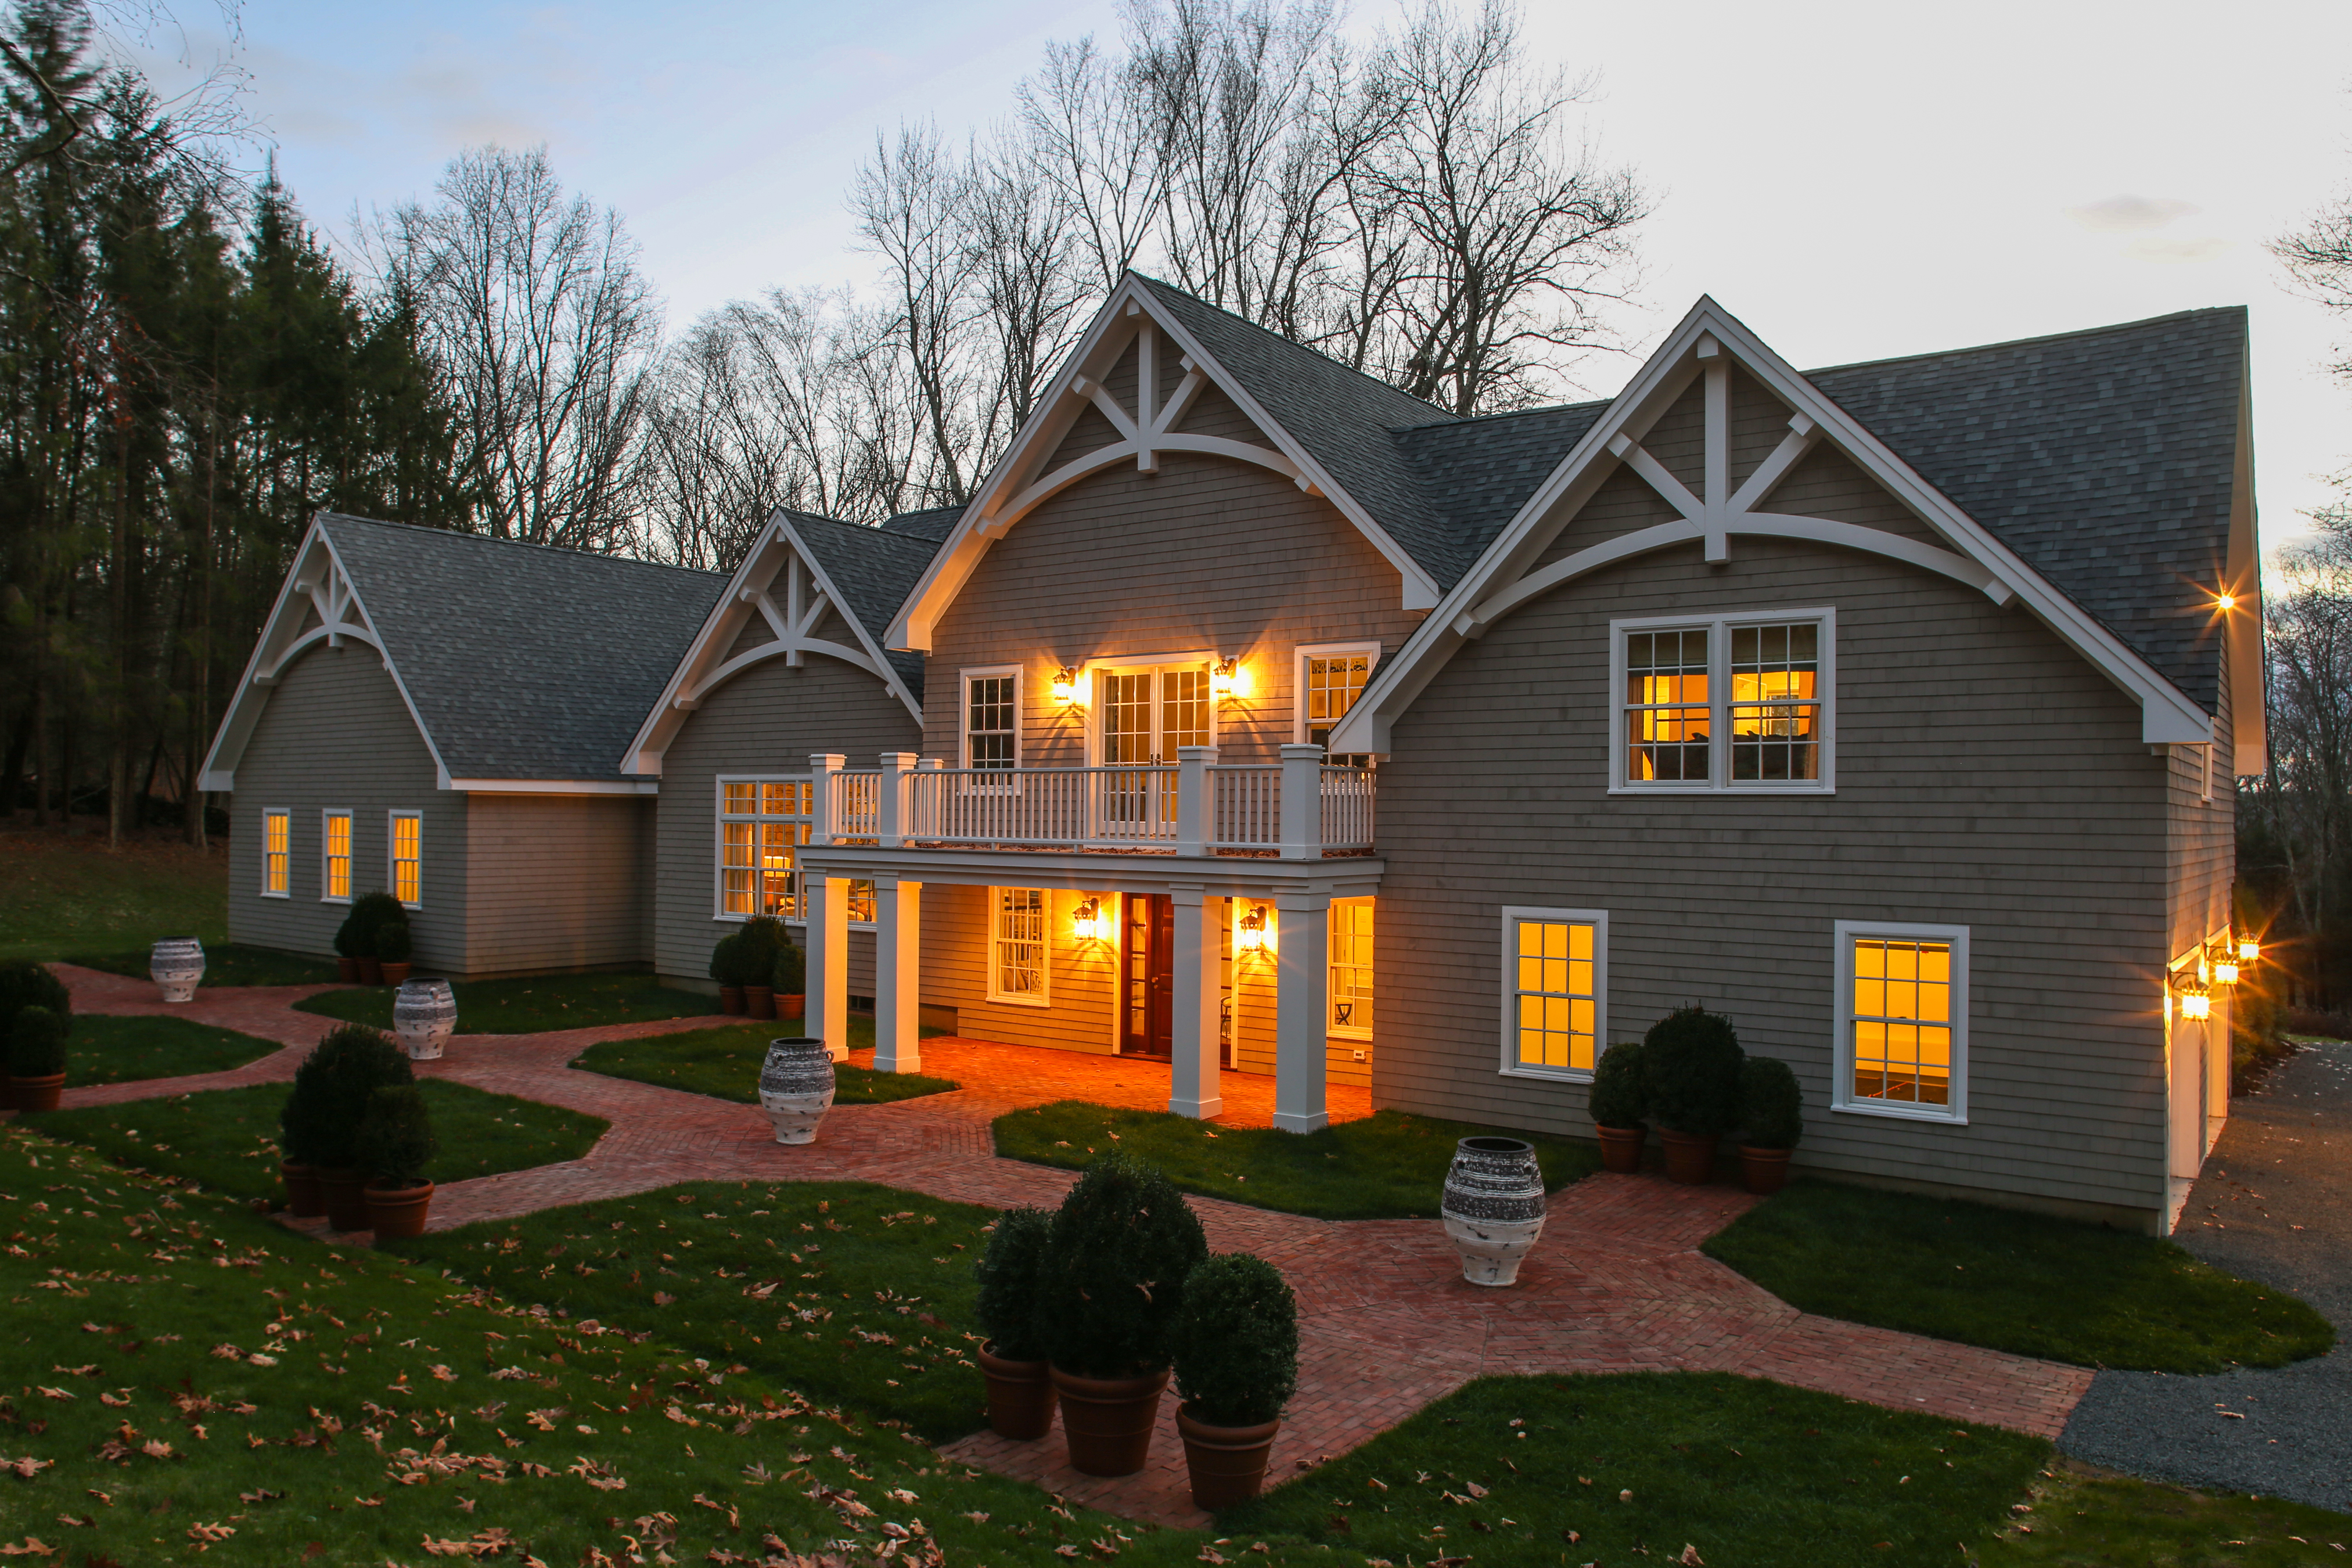 Single Family Home for Sale at Exceptional Property 49 Garnet Road Roxbury, Connecticut 06783 United States